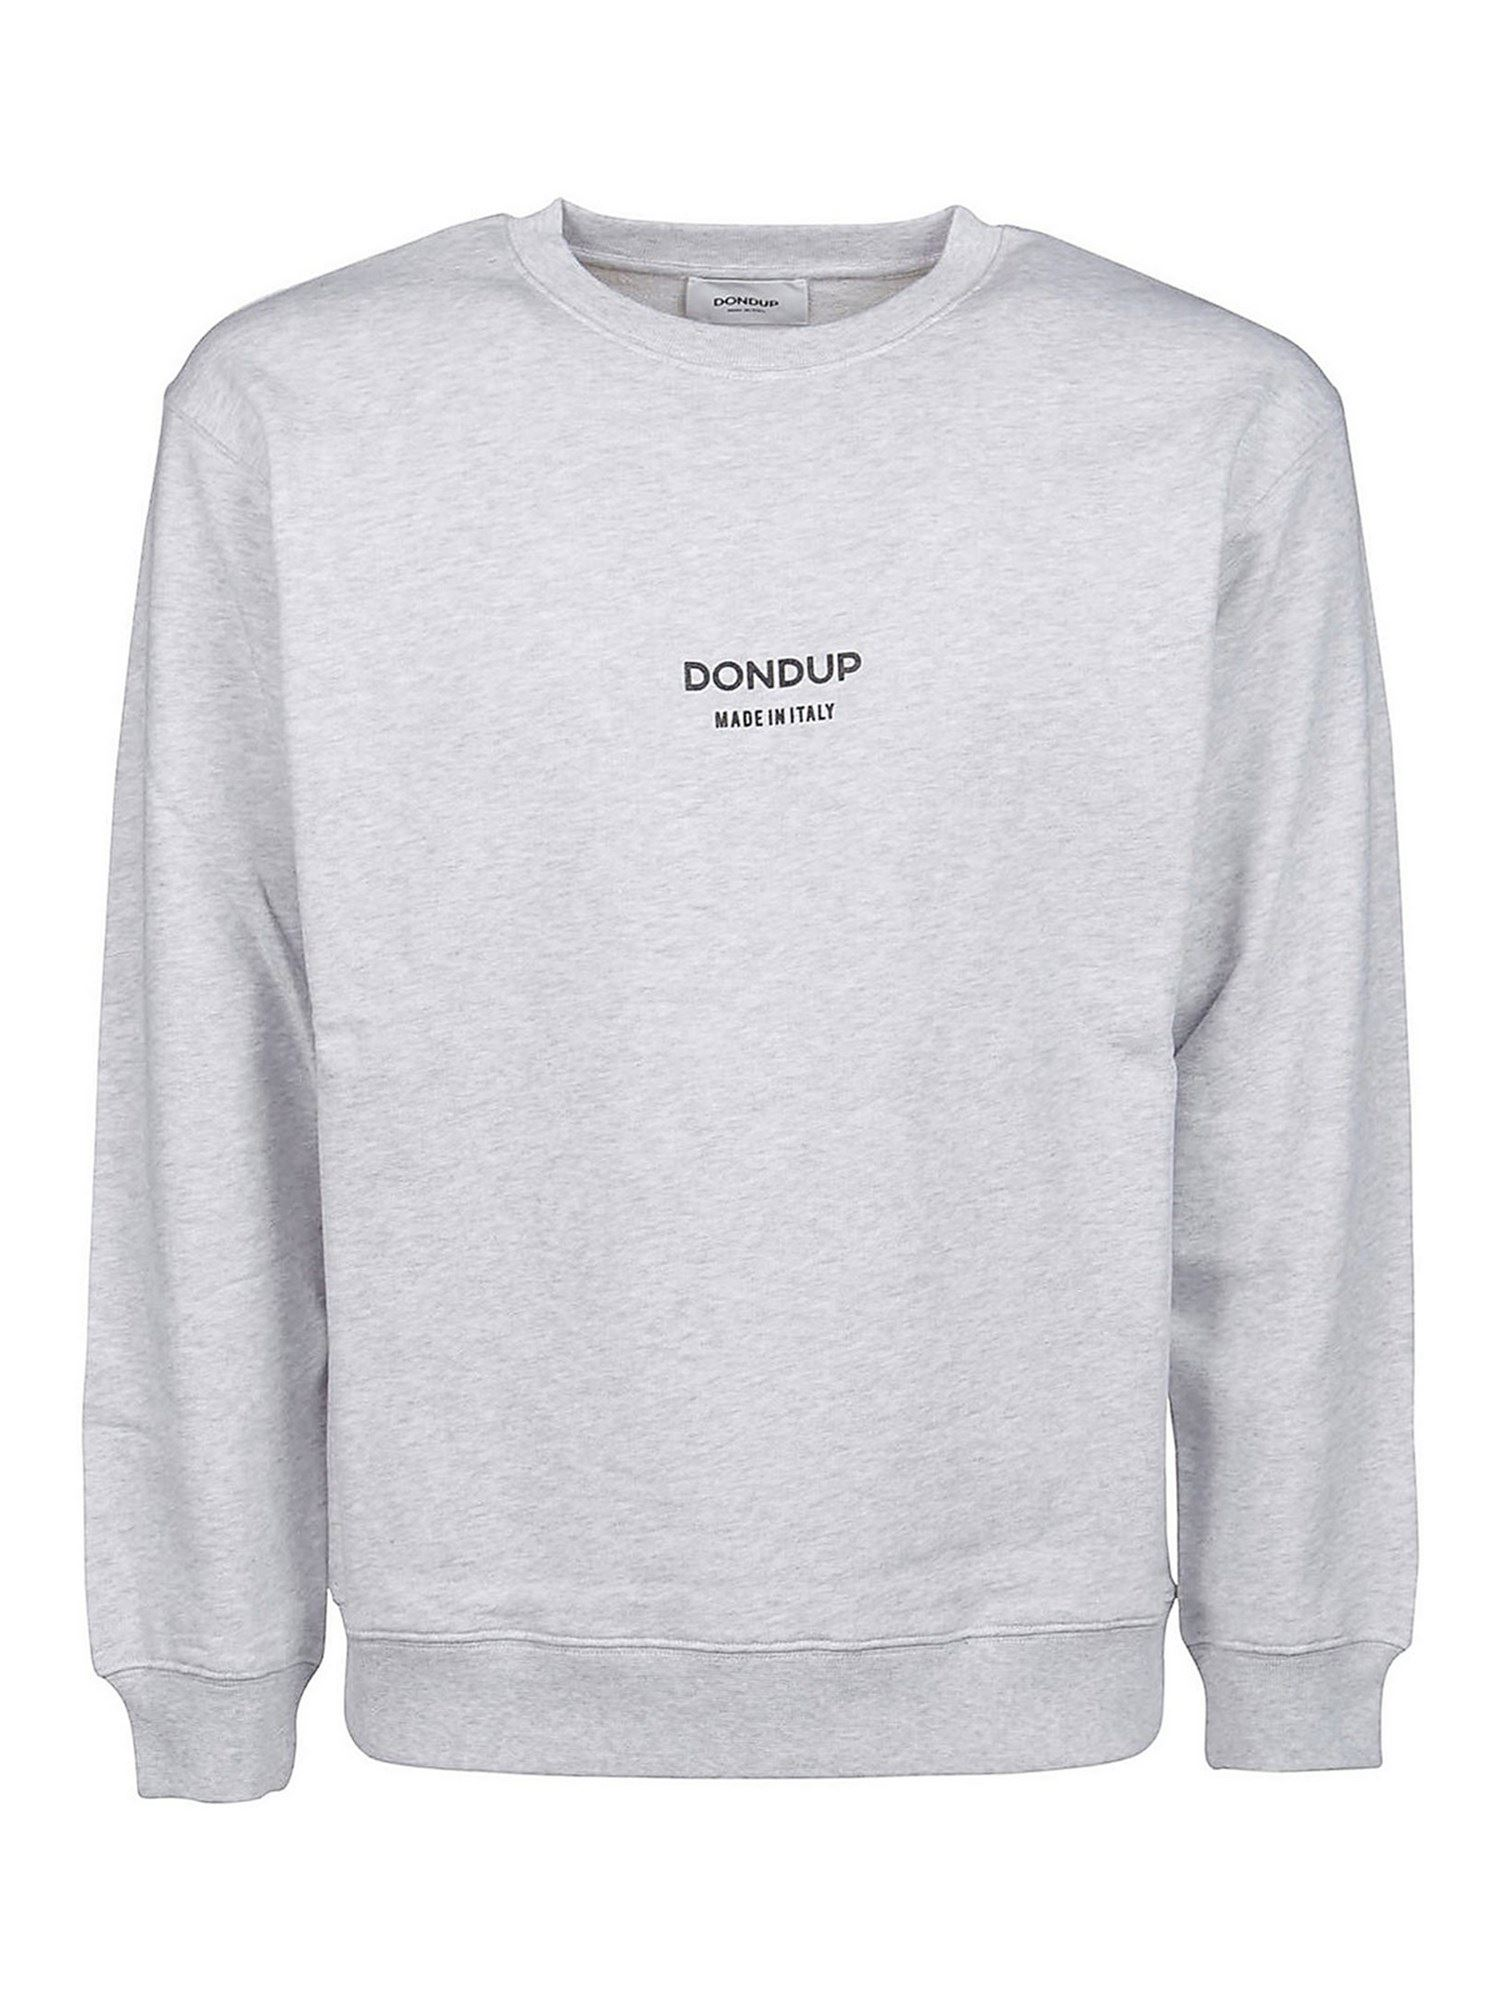 Dondup Cottons LOGO SWEATSHIRT IN MELANGE GRAY